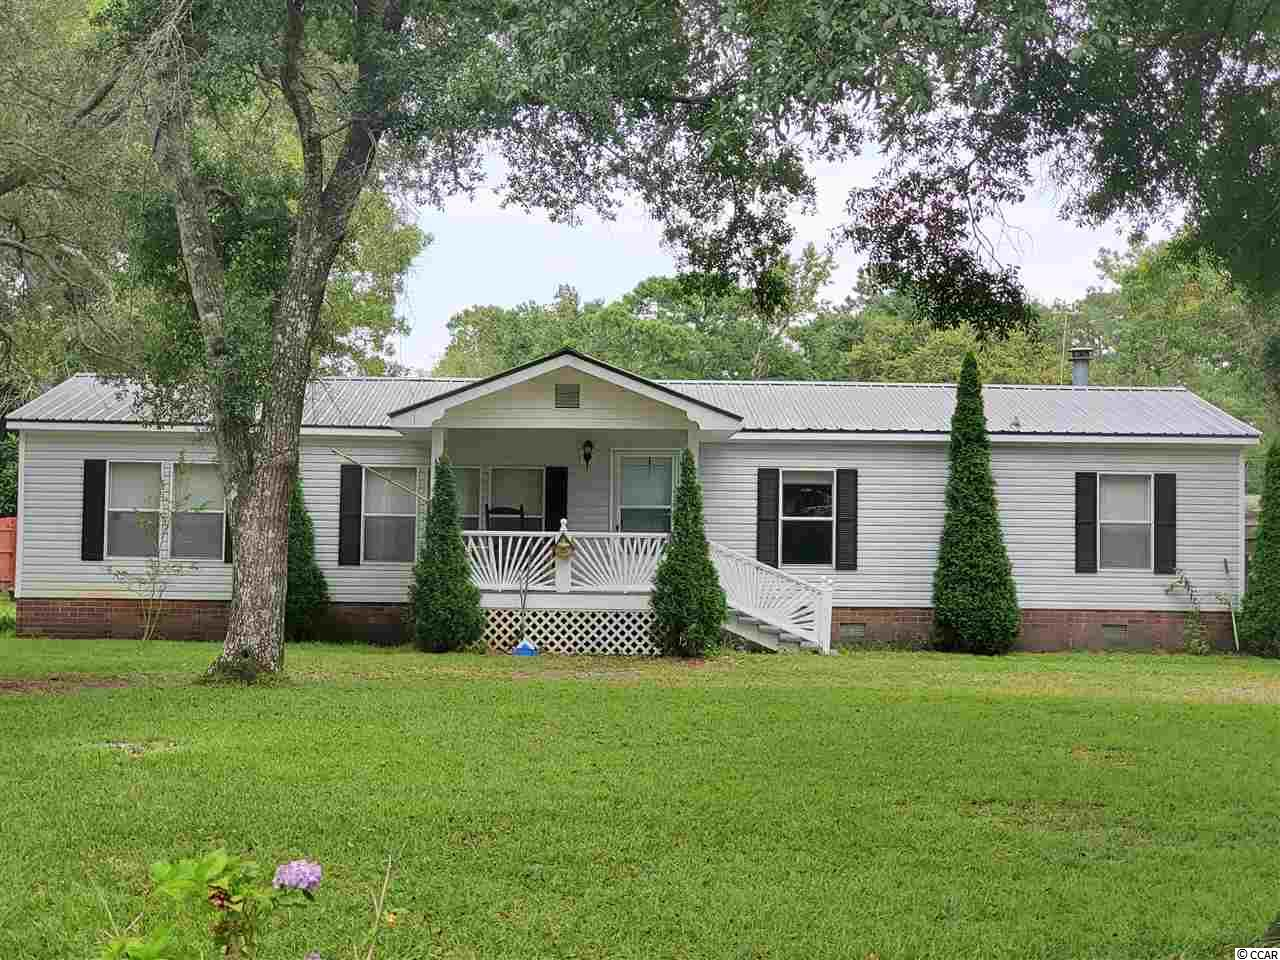 Come home to Oak Hill, Murrells Inlet, SC.  5073 Pee Dee Lane is located on the west side of Hwy. 17 and is a short distance to Huntington State Park, Garden City beaches and good seafood in Murrells Inlet. This well cared for 3 bedroom, 2 bath home has room to spread out with both a large living room and large family room that includes a wood burning fireplace.  The kitchen is open to the dining area and family room.  It has ample cabinets and counter space.  The seller is including the refrigerator, washer and dryer. Enjoy your morning coffee and evening relaxation on the large screened porch.  The covered patio is accessed from the laundry room off the kitchen and is perfect for cooking out on sunny and rainy days.  The split bedroom plan allows both privacy and convenience to all the living areas.  The back yard is fenced in for privacy and security.  There is a large workshop with storage rooms on either side plus another storage area on the side for bicycles and other yard toys and tools.  One storage room is perfect for your golf cart, etc.  Best of all, no HOA! You can keep your boat and RV on your property.  The metal roof was installed by the previous owner in 2012.